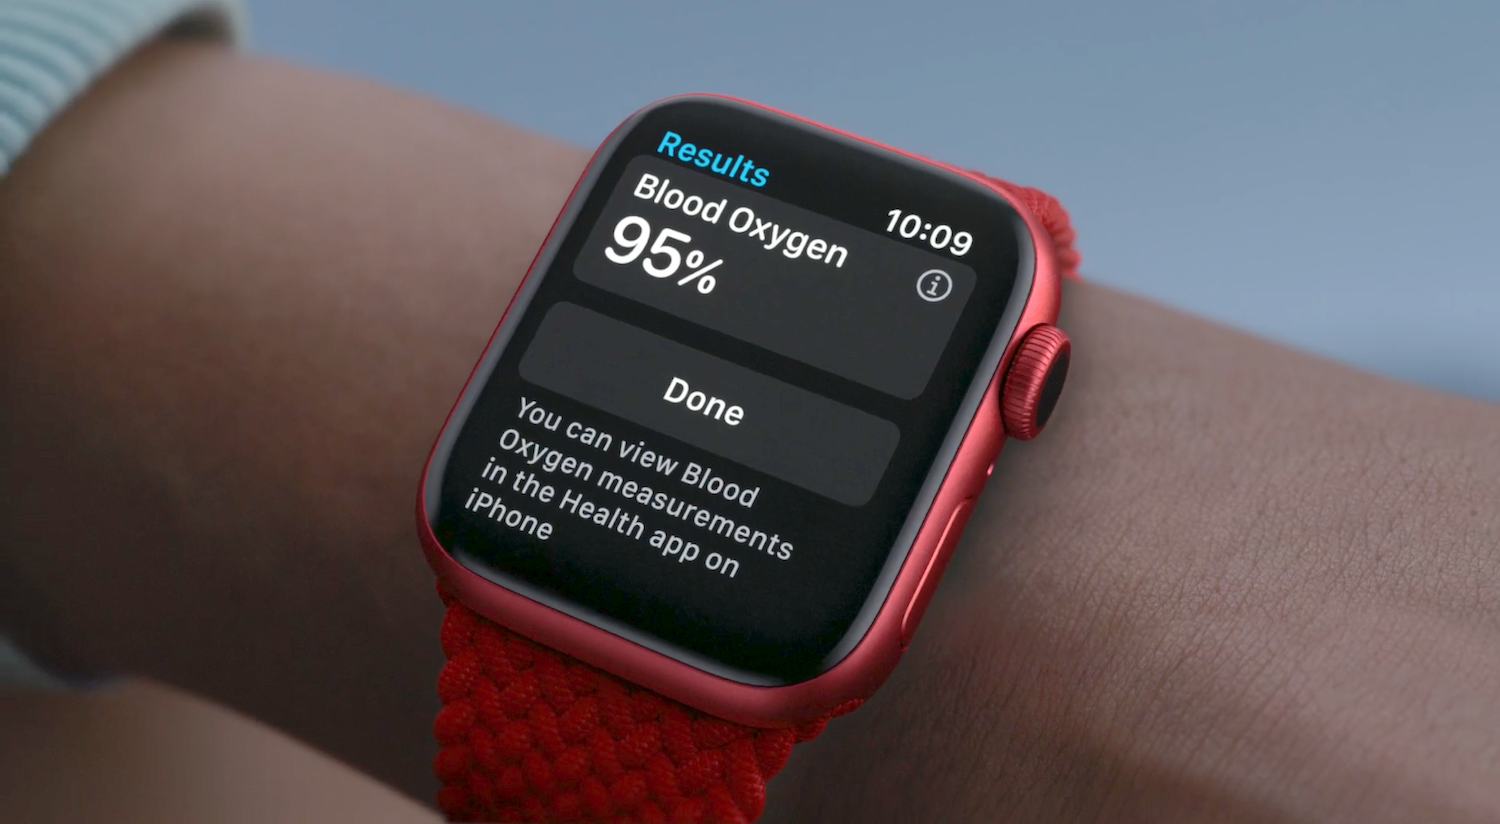 Apple Watch Blood Oxygen app: How it works and how to use it - CNET